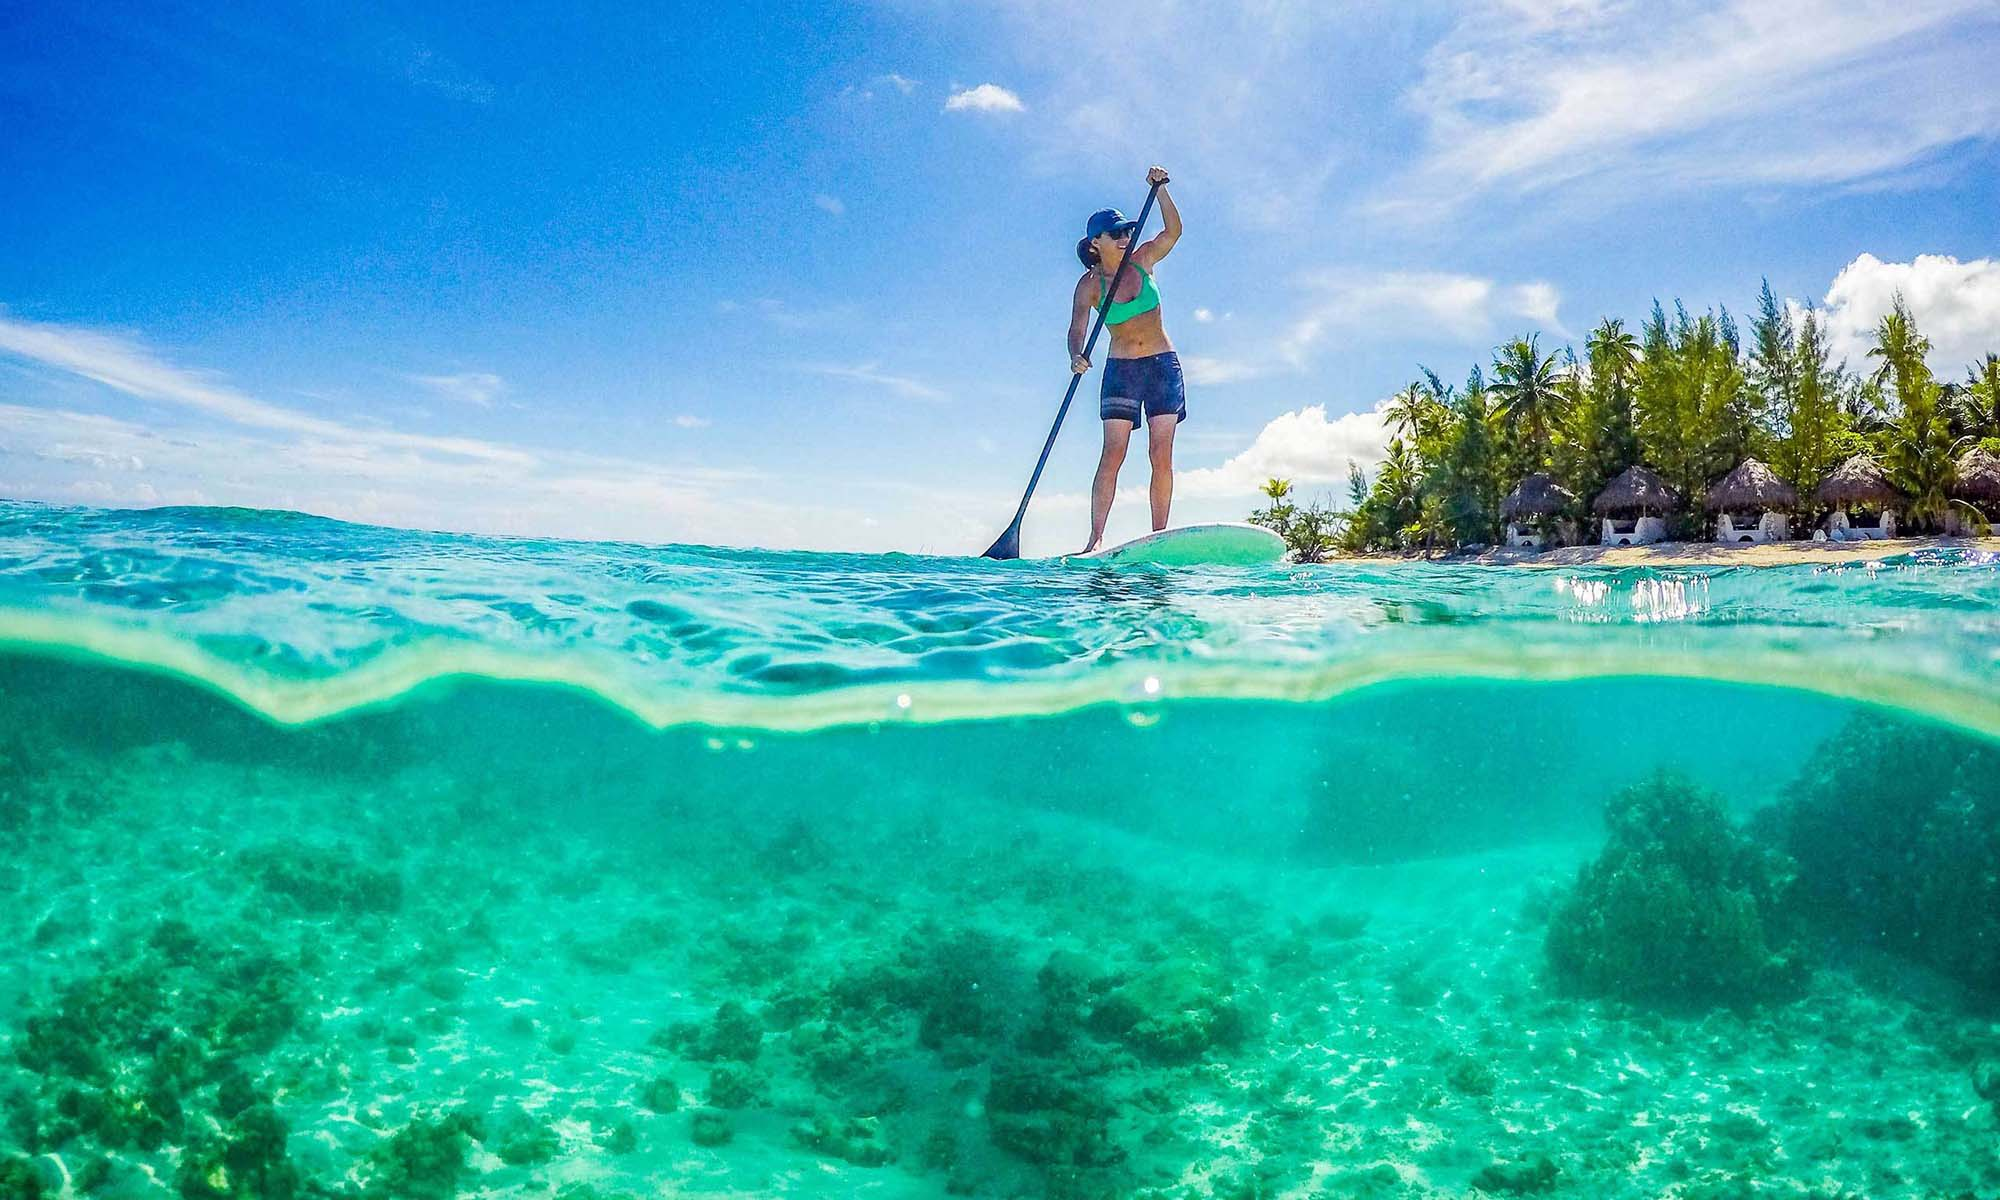 Ninamu Resort, Paddleboarding